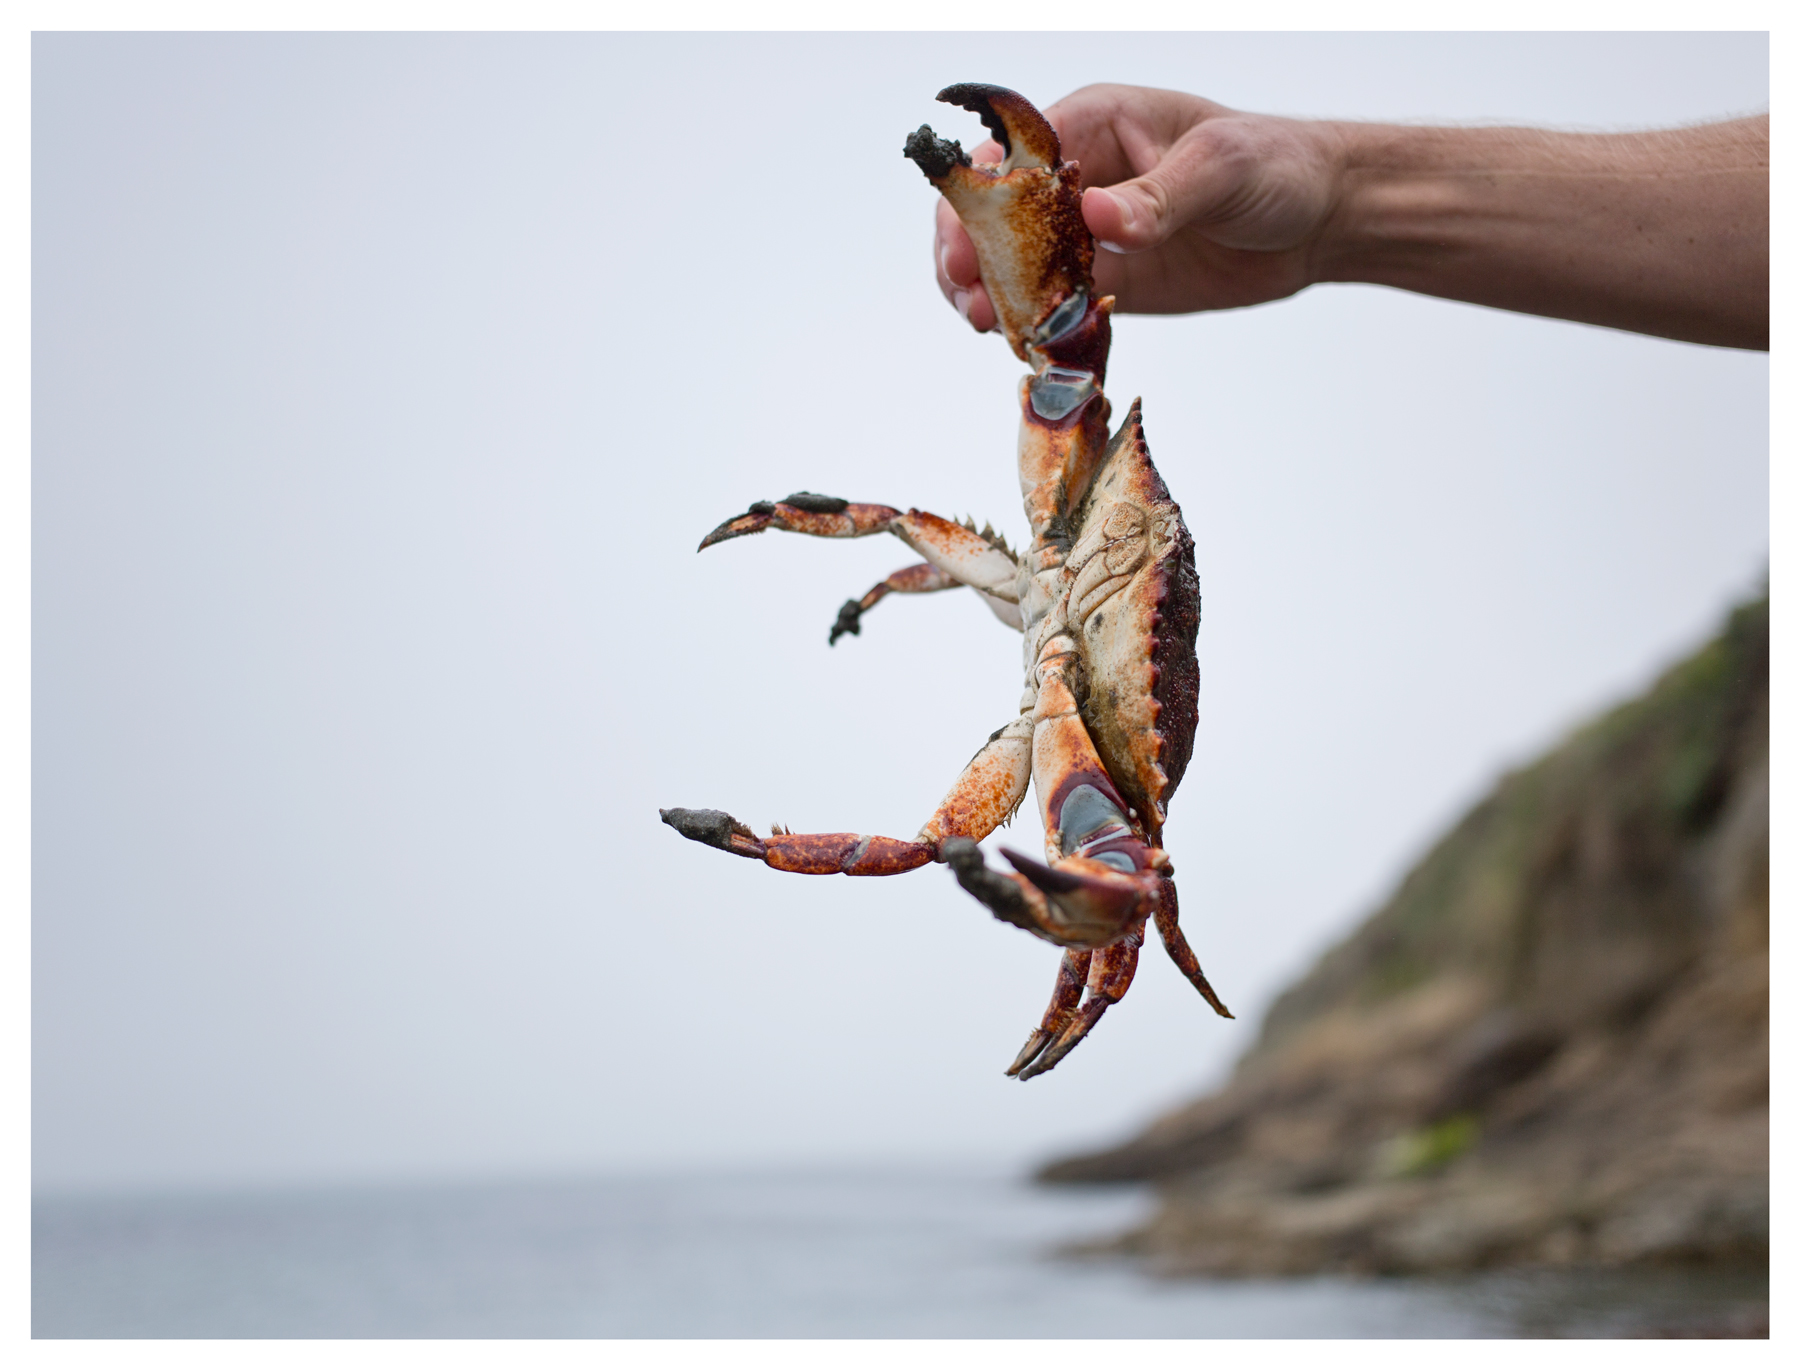 Red rock crab in hand; South Jetty of Doran Regional Park; Bodega Bay, CA; June 2015